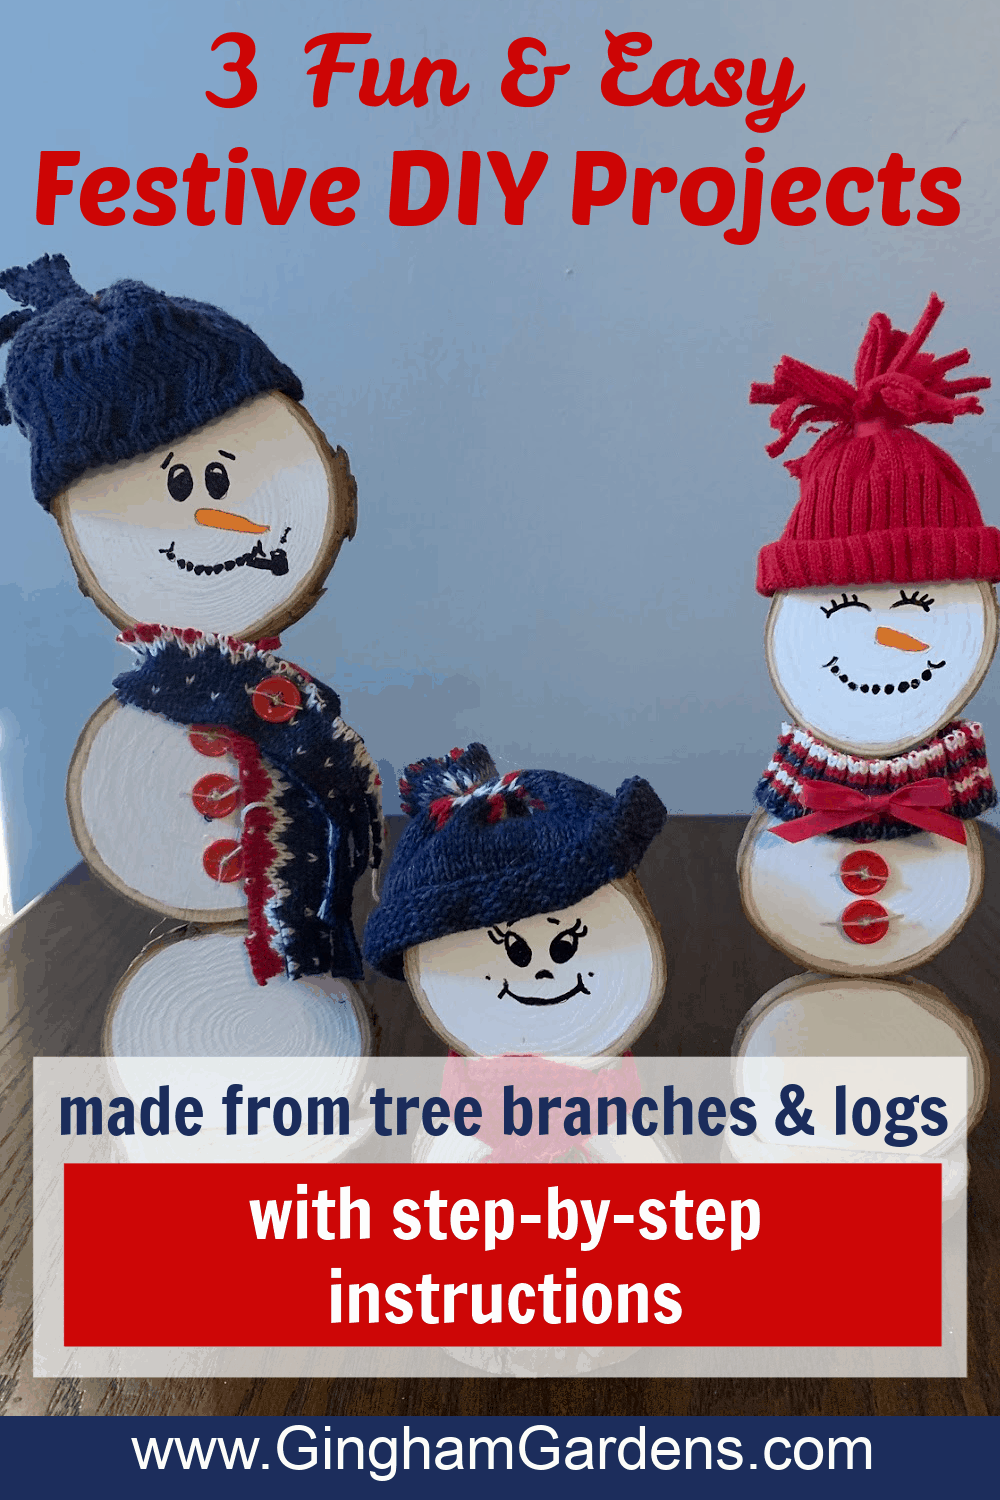 Image of wood snowmen with text overlay - 3 Fun & Easy Festive DIY Projects